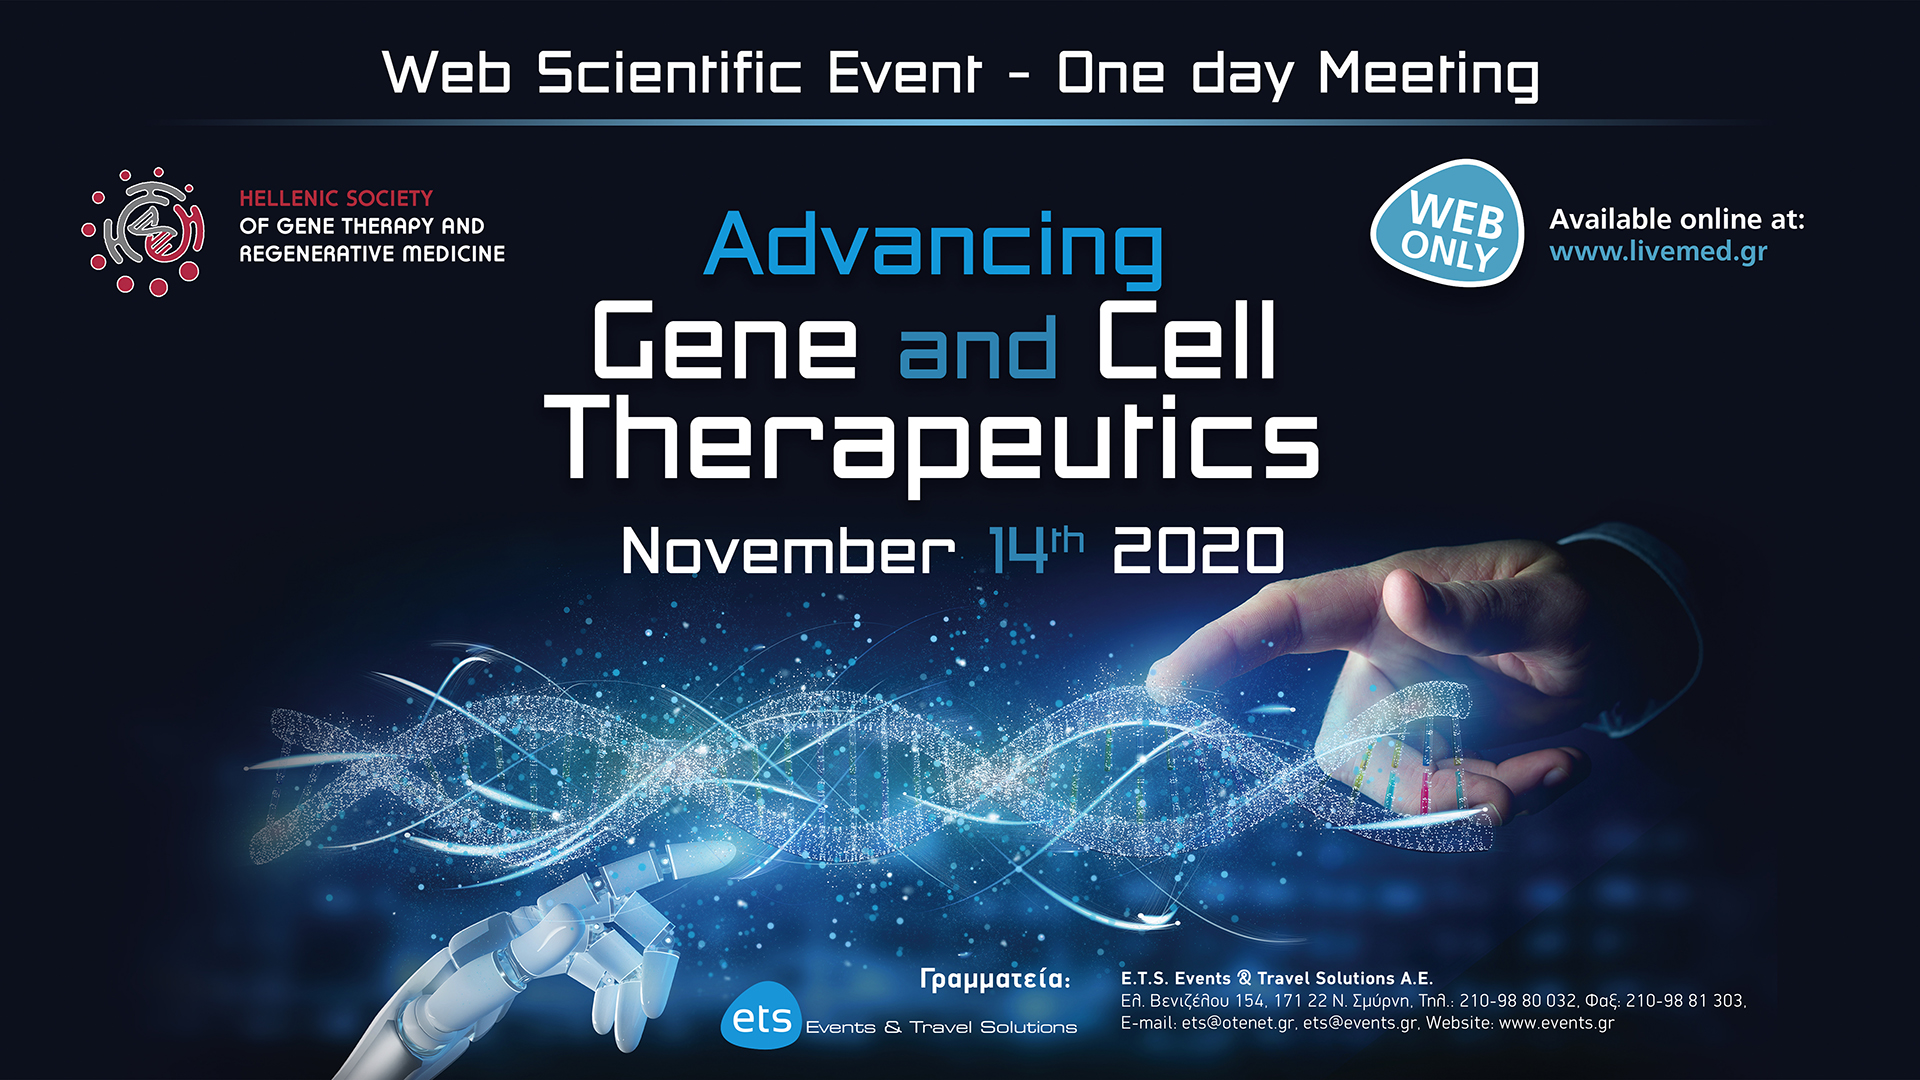 One day web Meeting - Advancing Gene and Cell Therapeuticsa